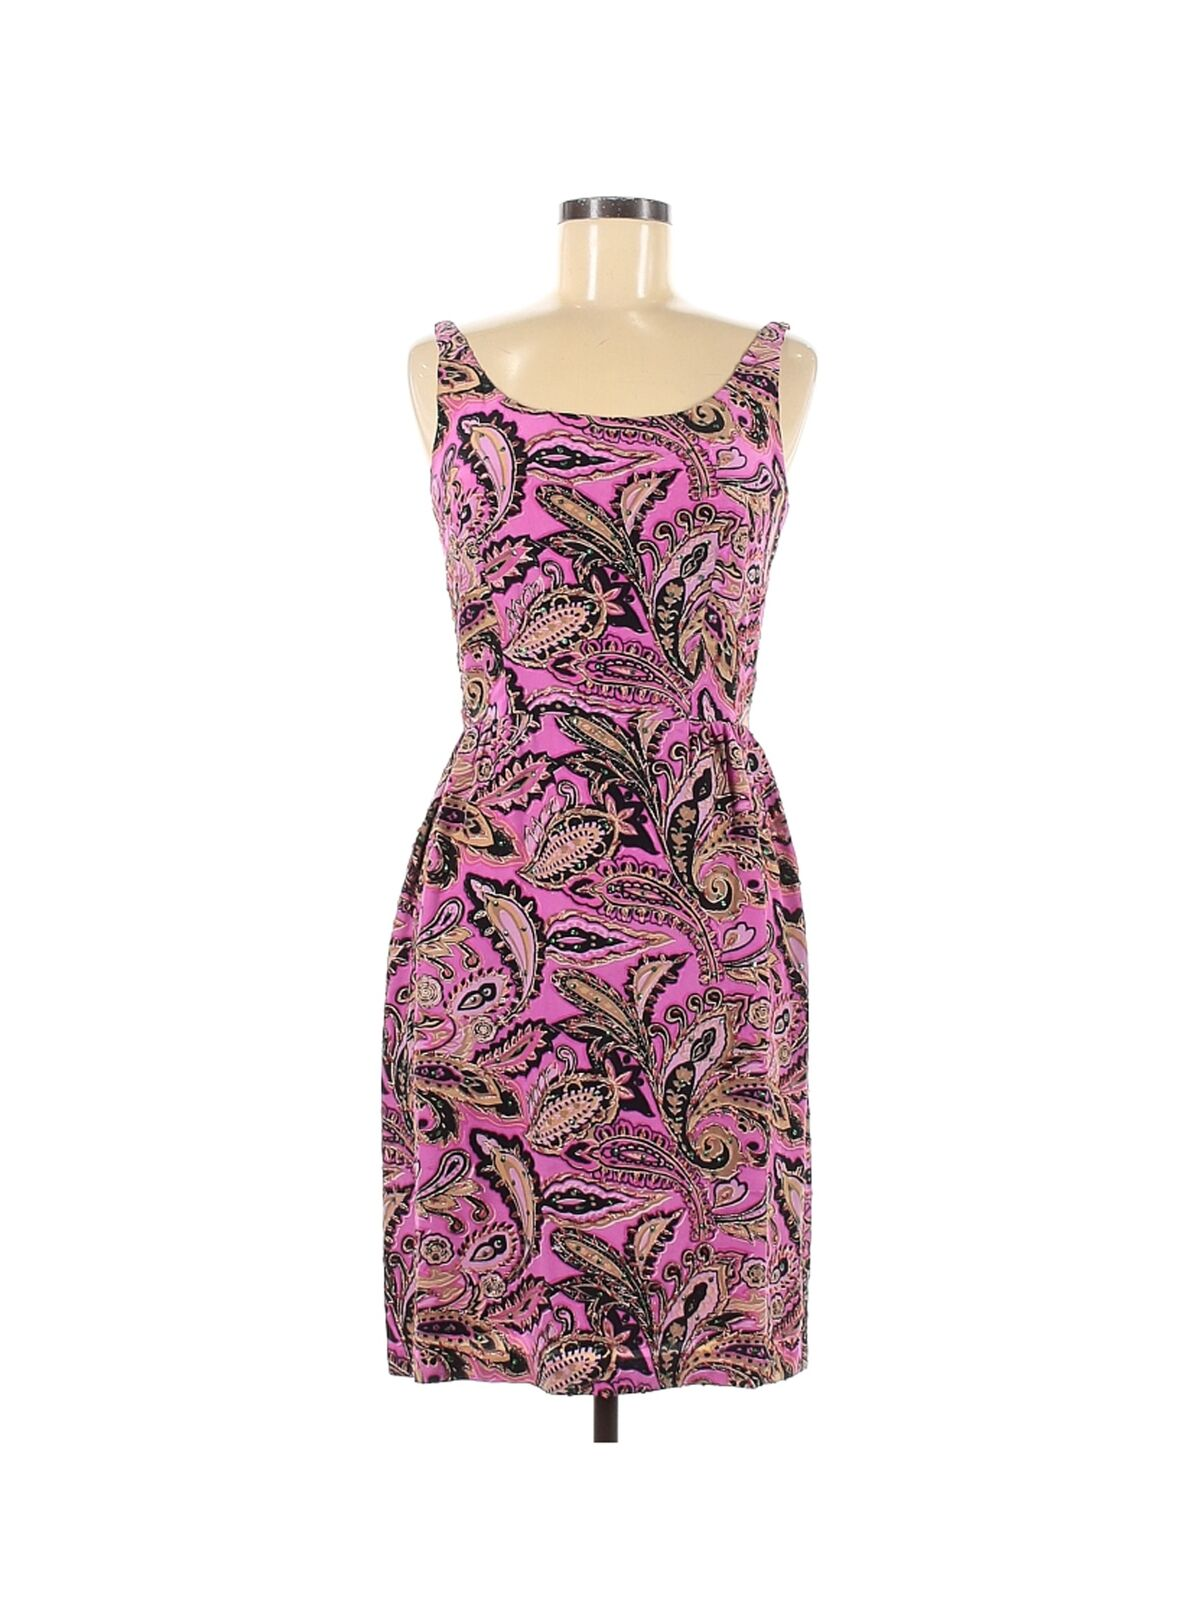 Anna Sui Women Pink Casual Dress 6 - image 1